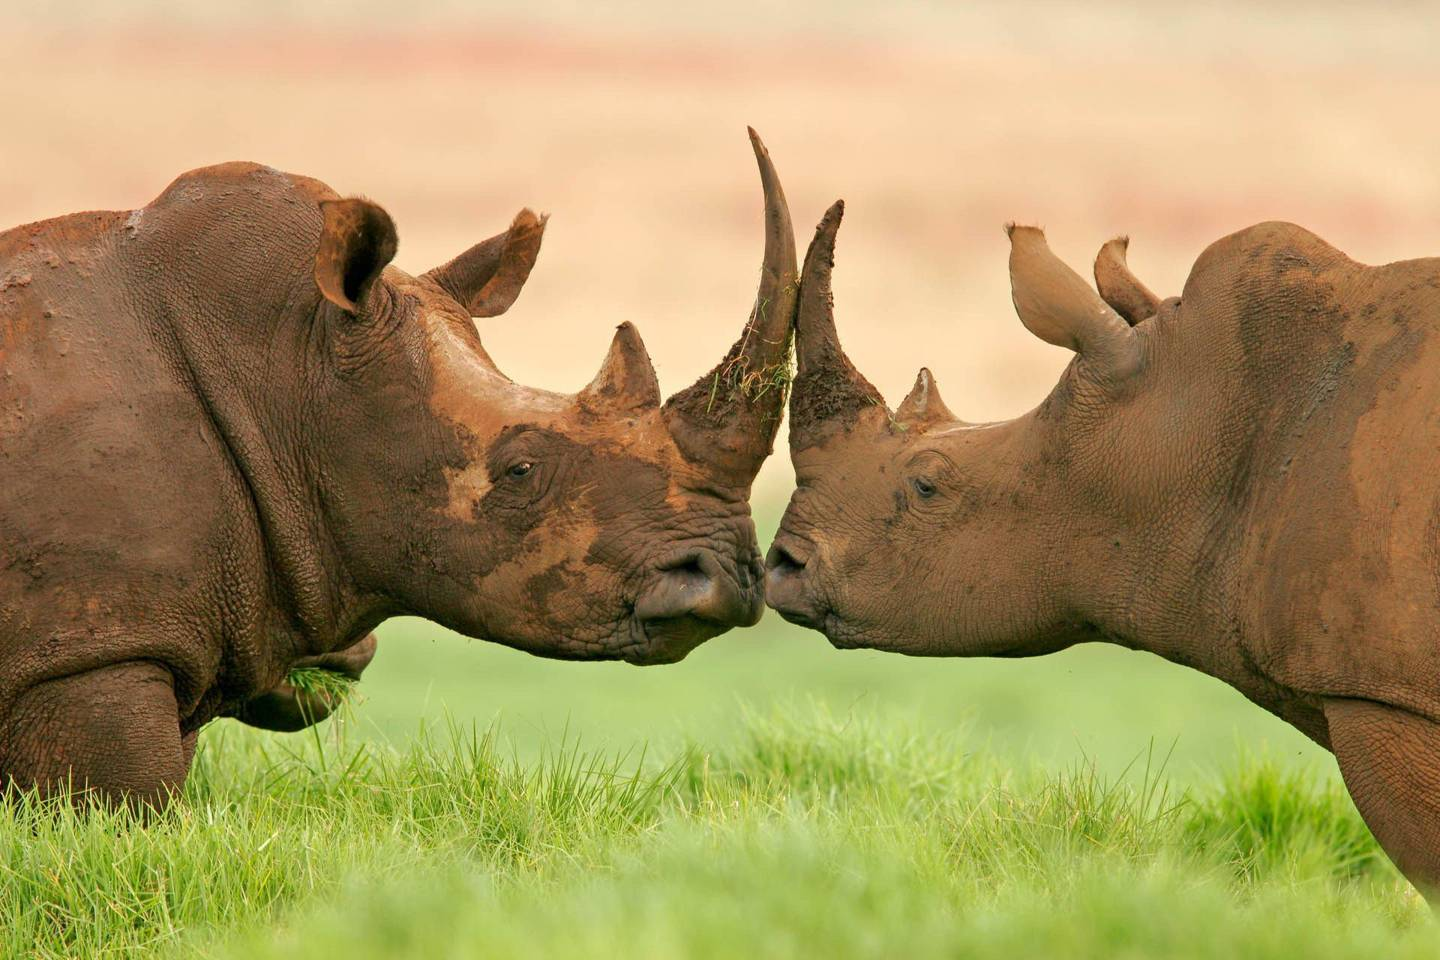 3D-printed rhino horns will be 'ready in two years' – but could they make poaching worse?